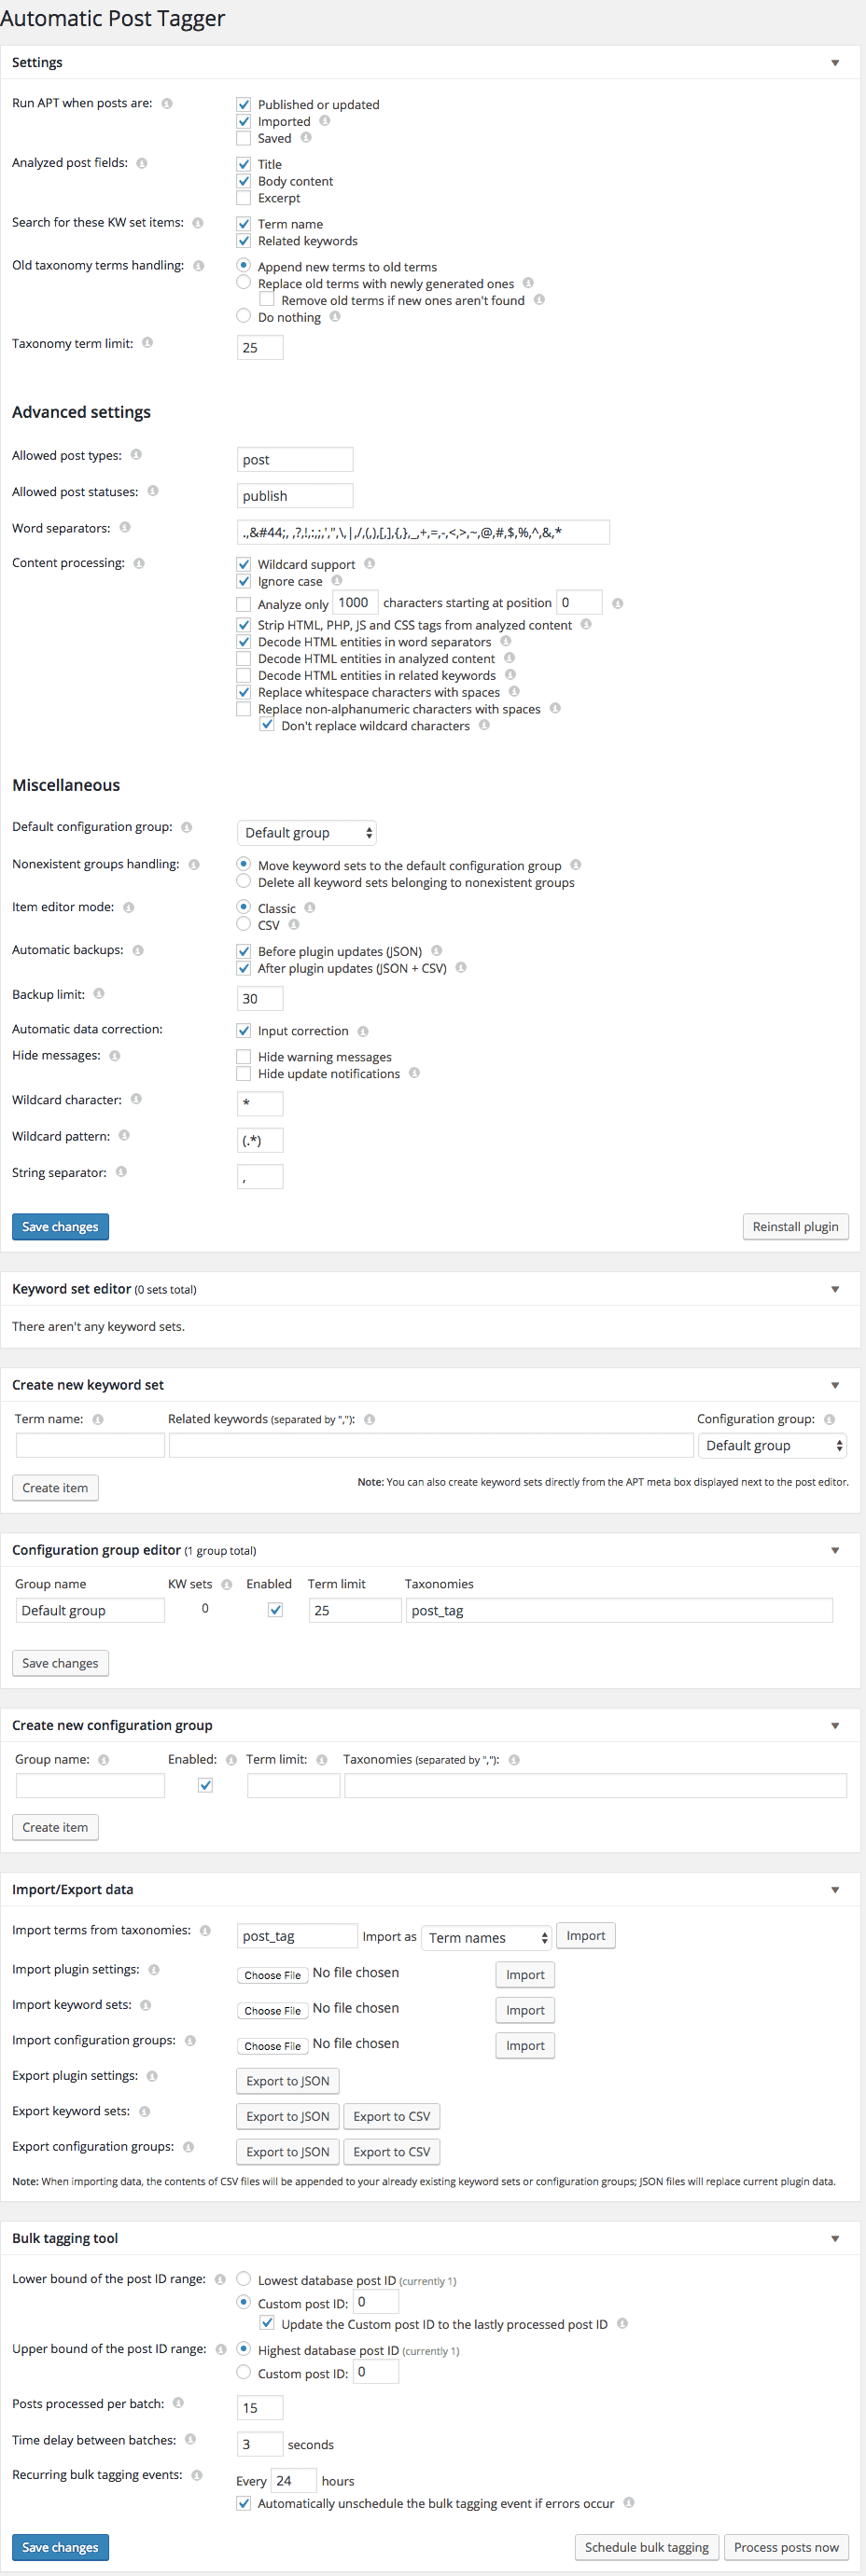 Automatic Post Tagger Settings